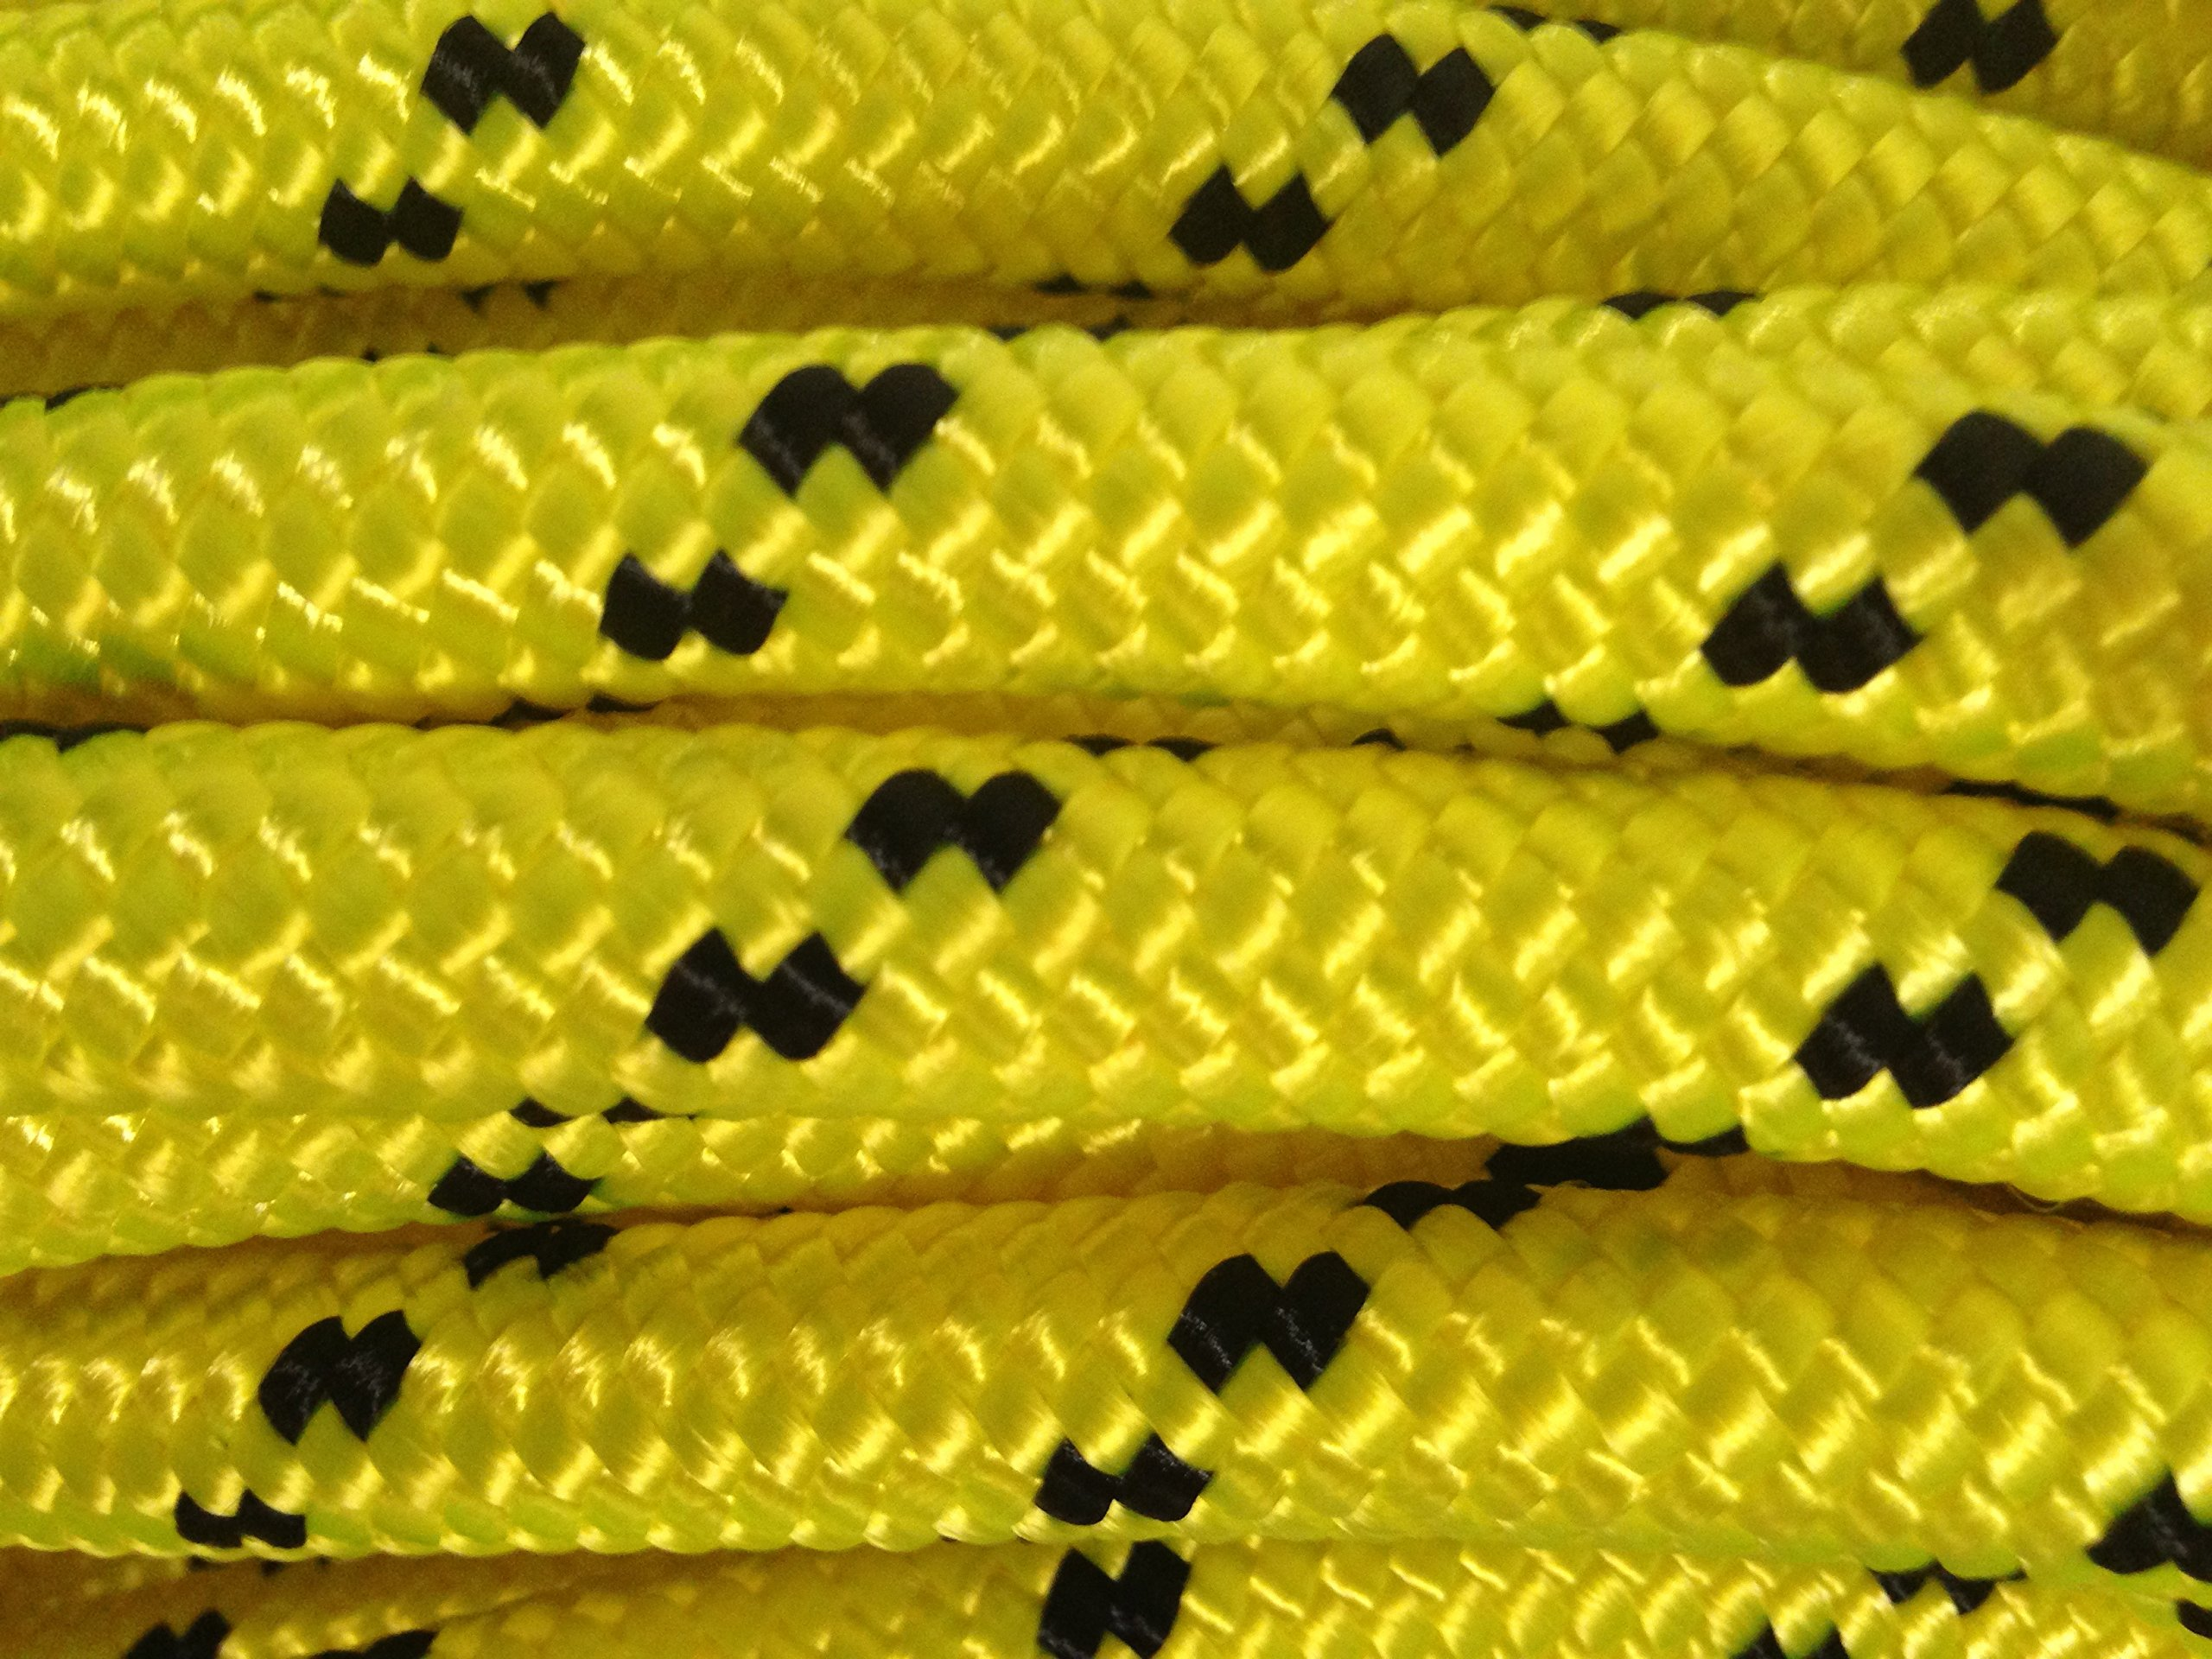 1/2'' X 200' Double Braided Polyester Arborist Tree Rope, Yellow by Blue Ox Rope (Image #1)